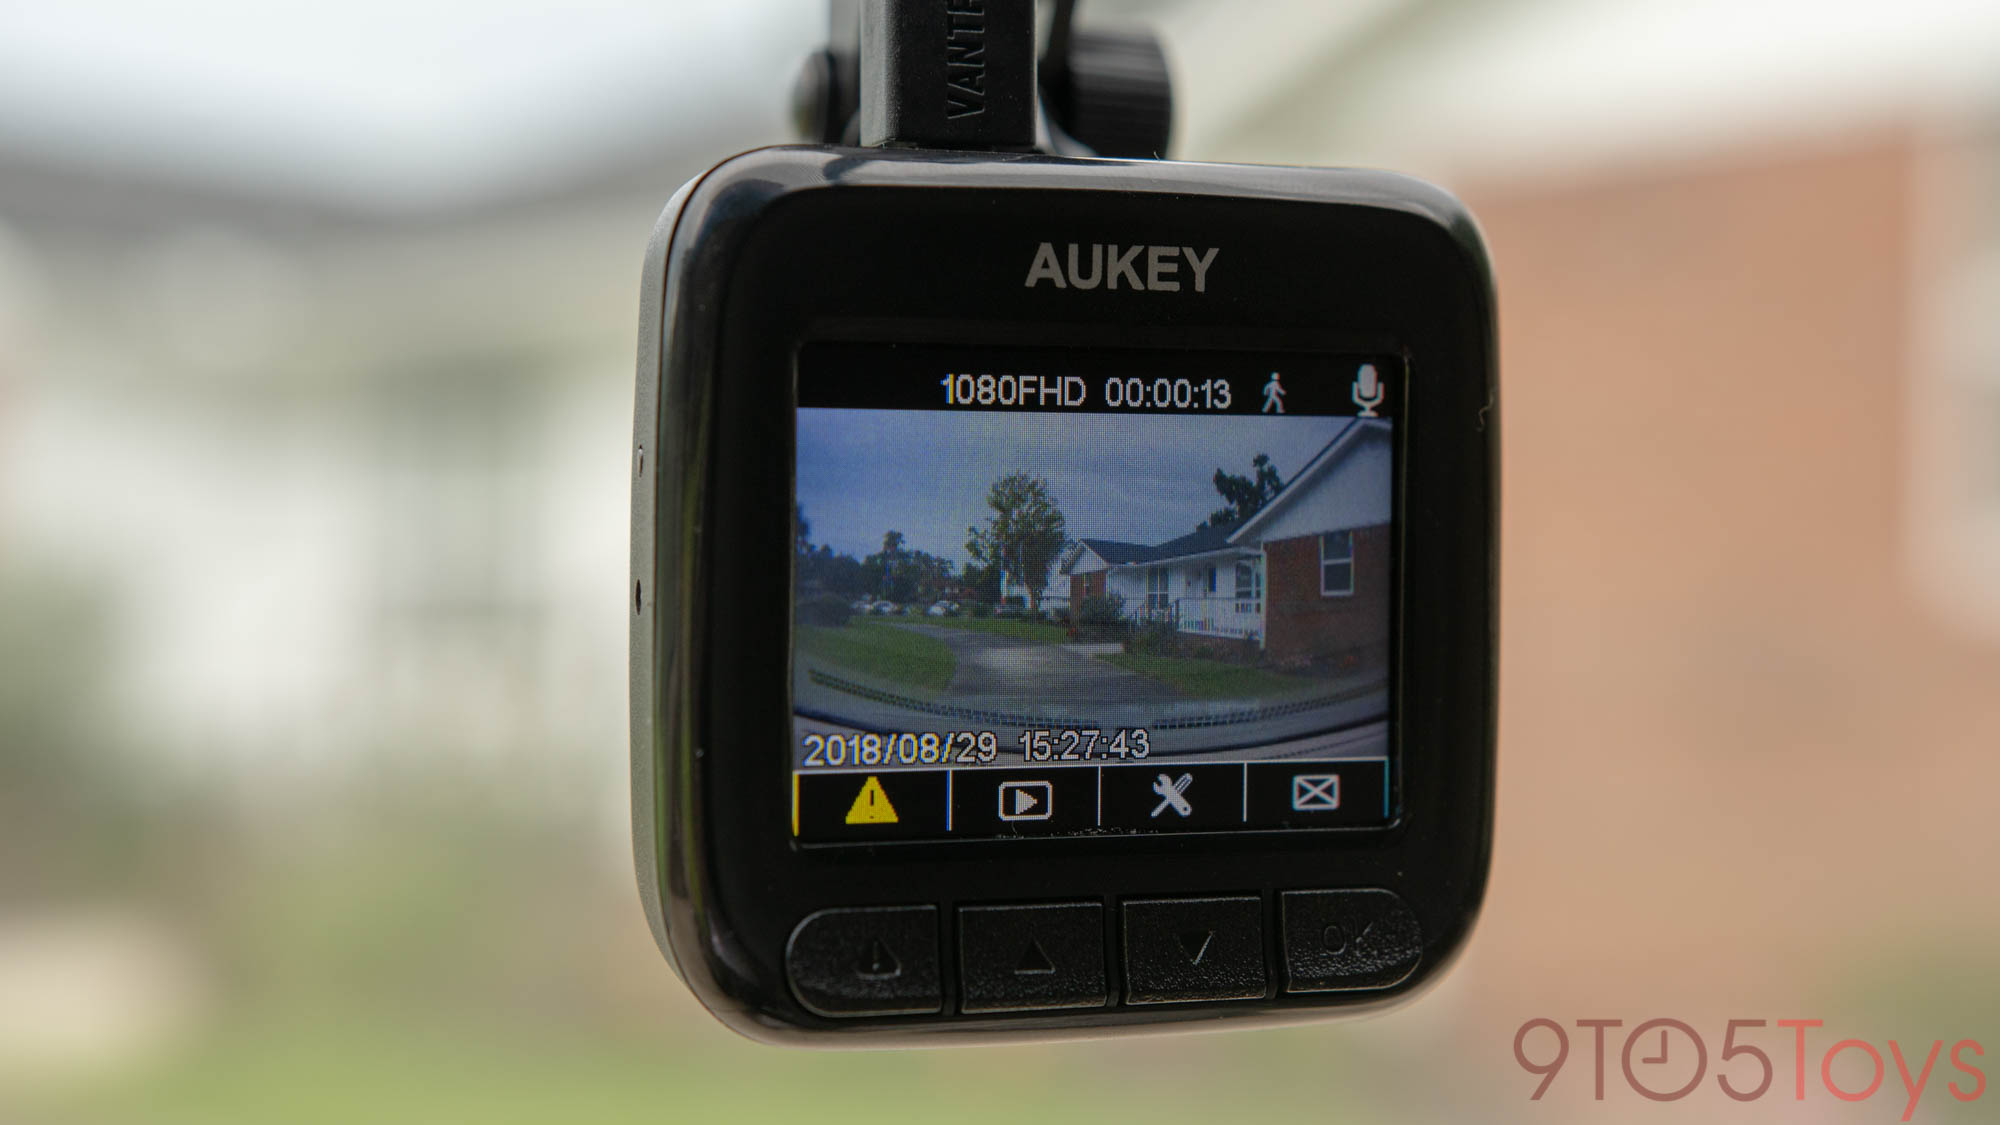 Aukey's 1080p dash camera captures surroundings as you drive for $47, more